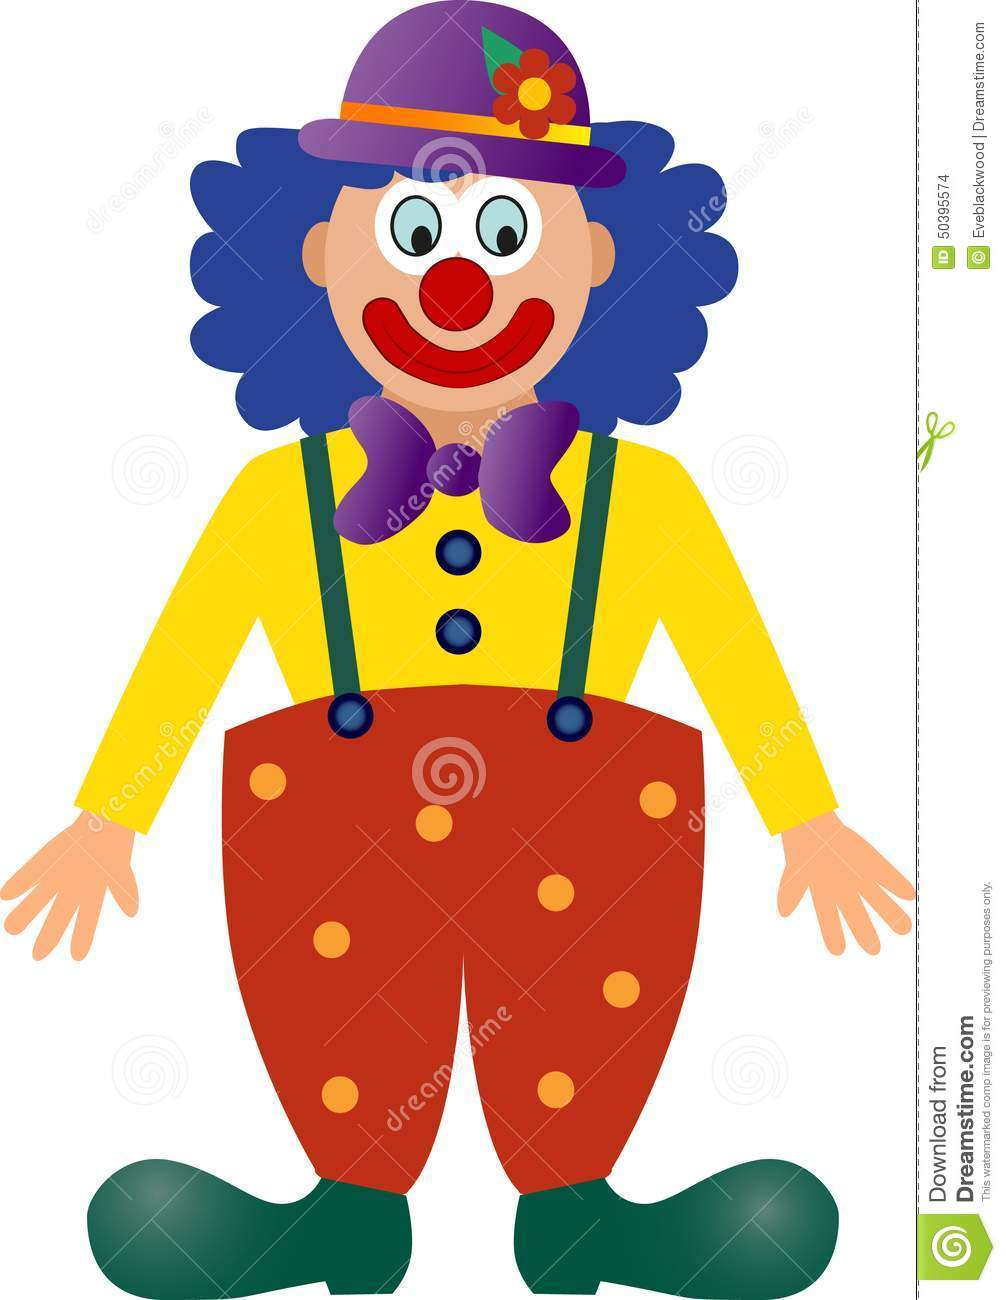 Vectorcarnaval-clown